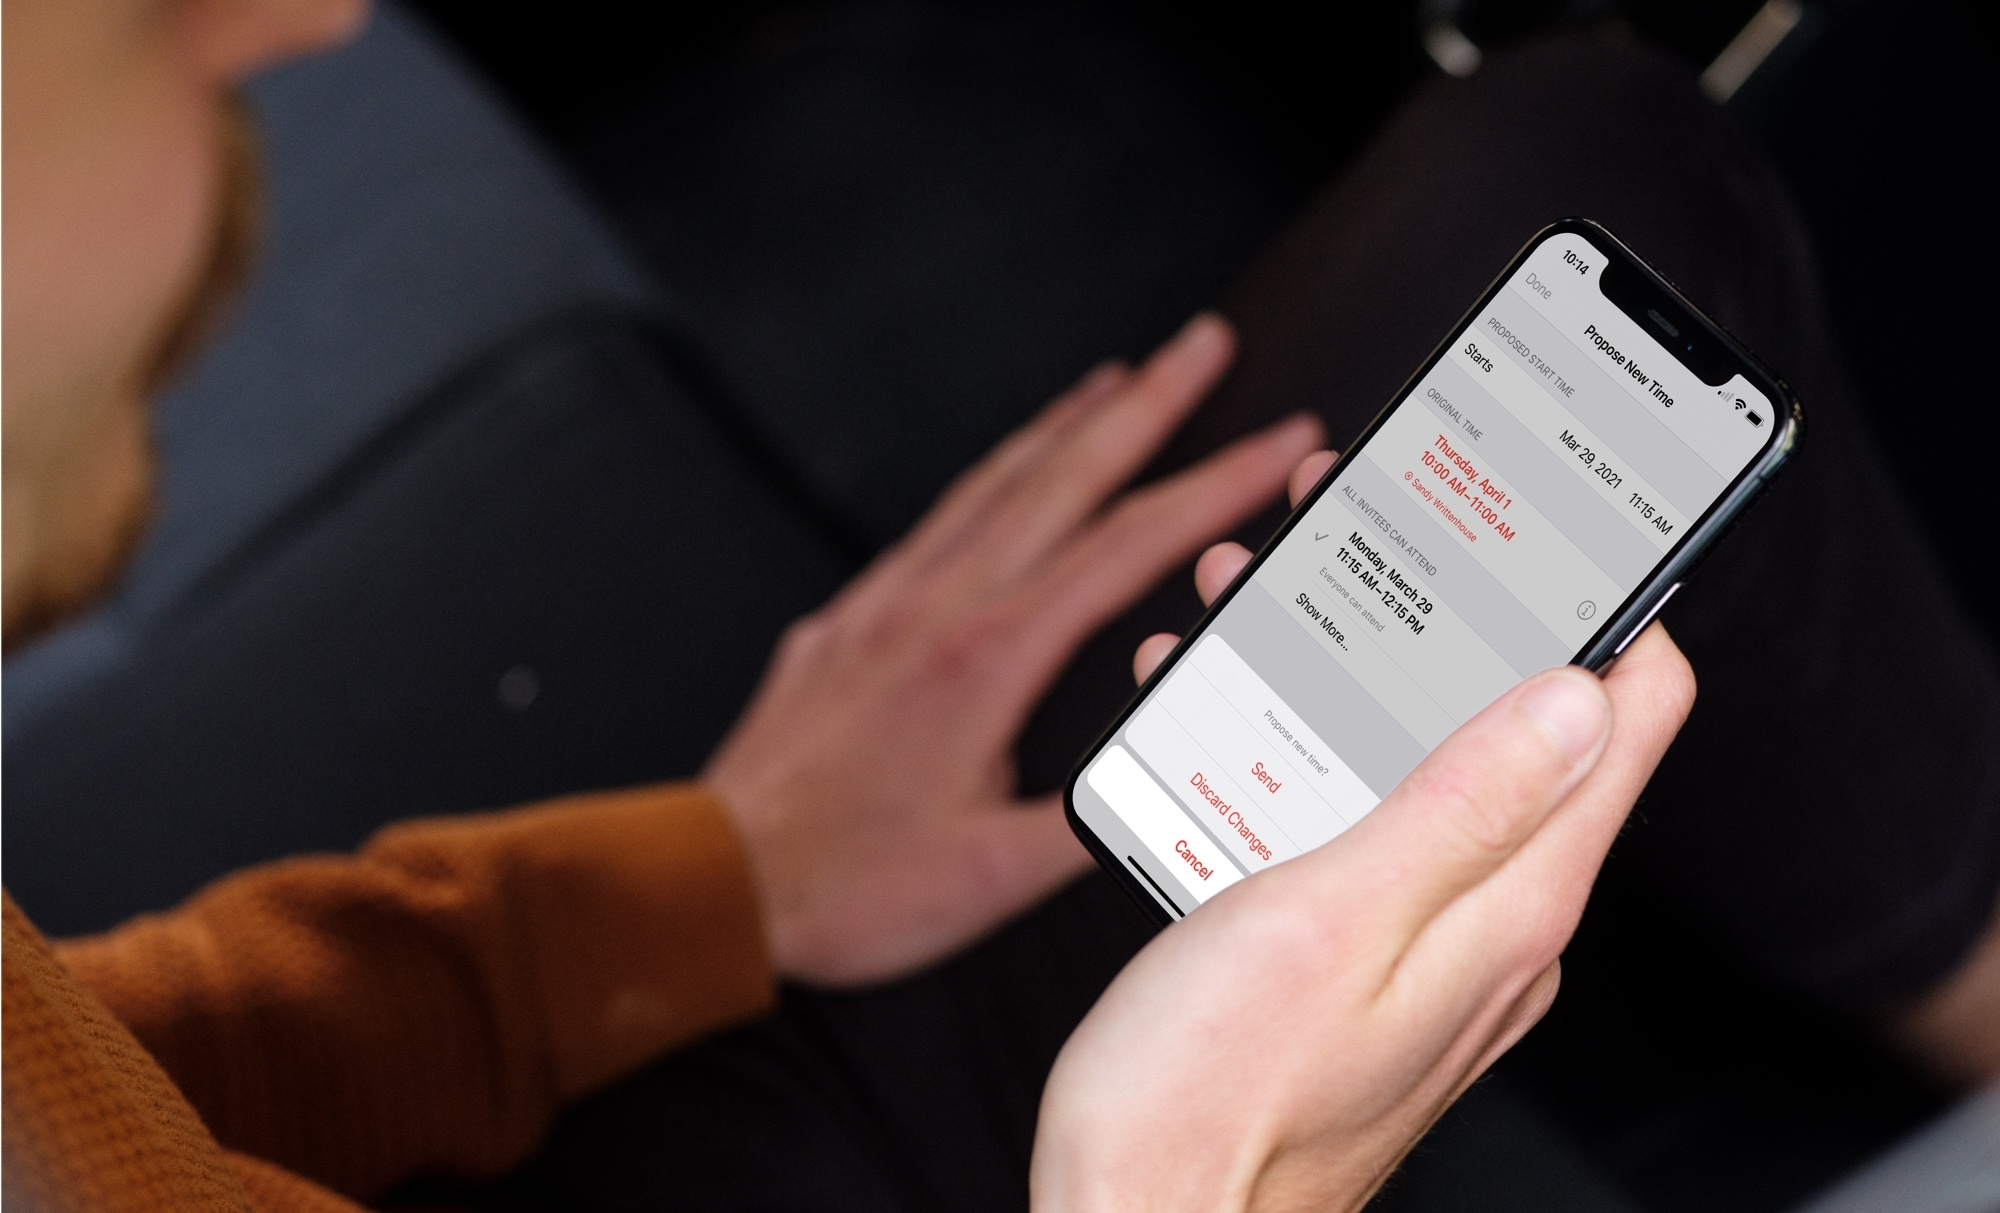 Propose New Time for Calendar Event on iPhone